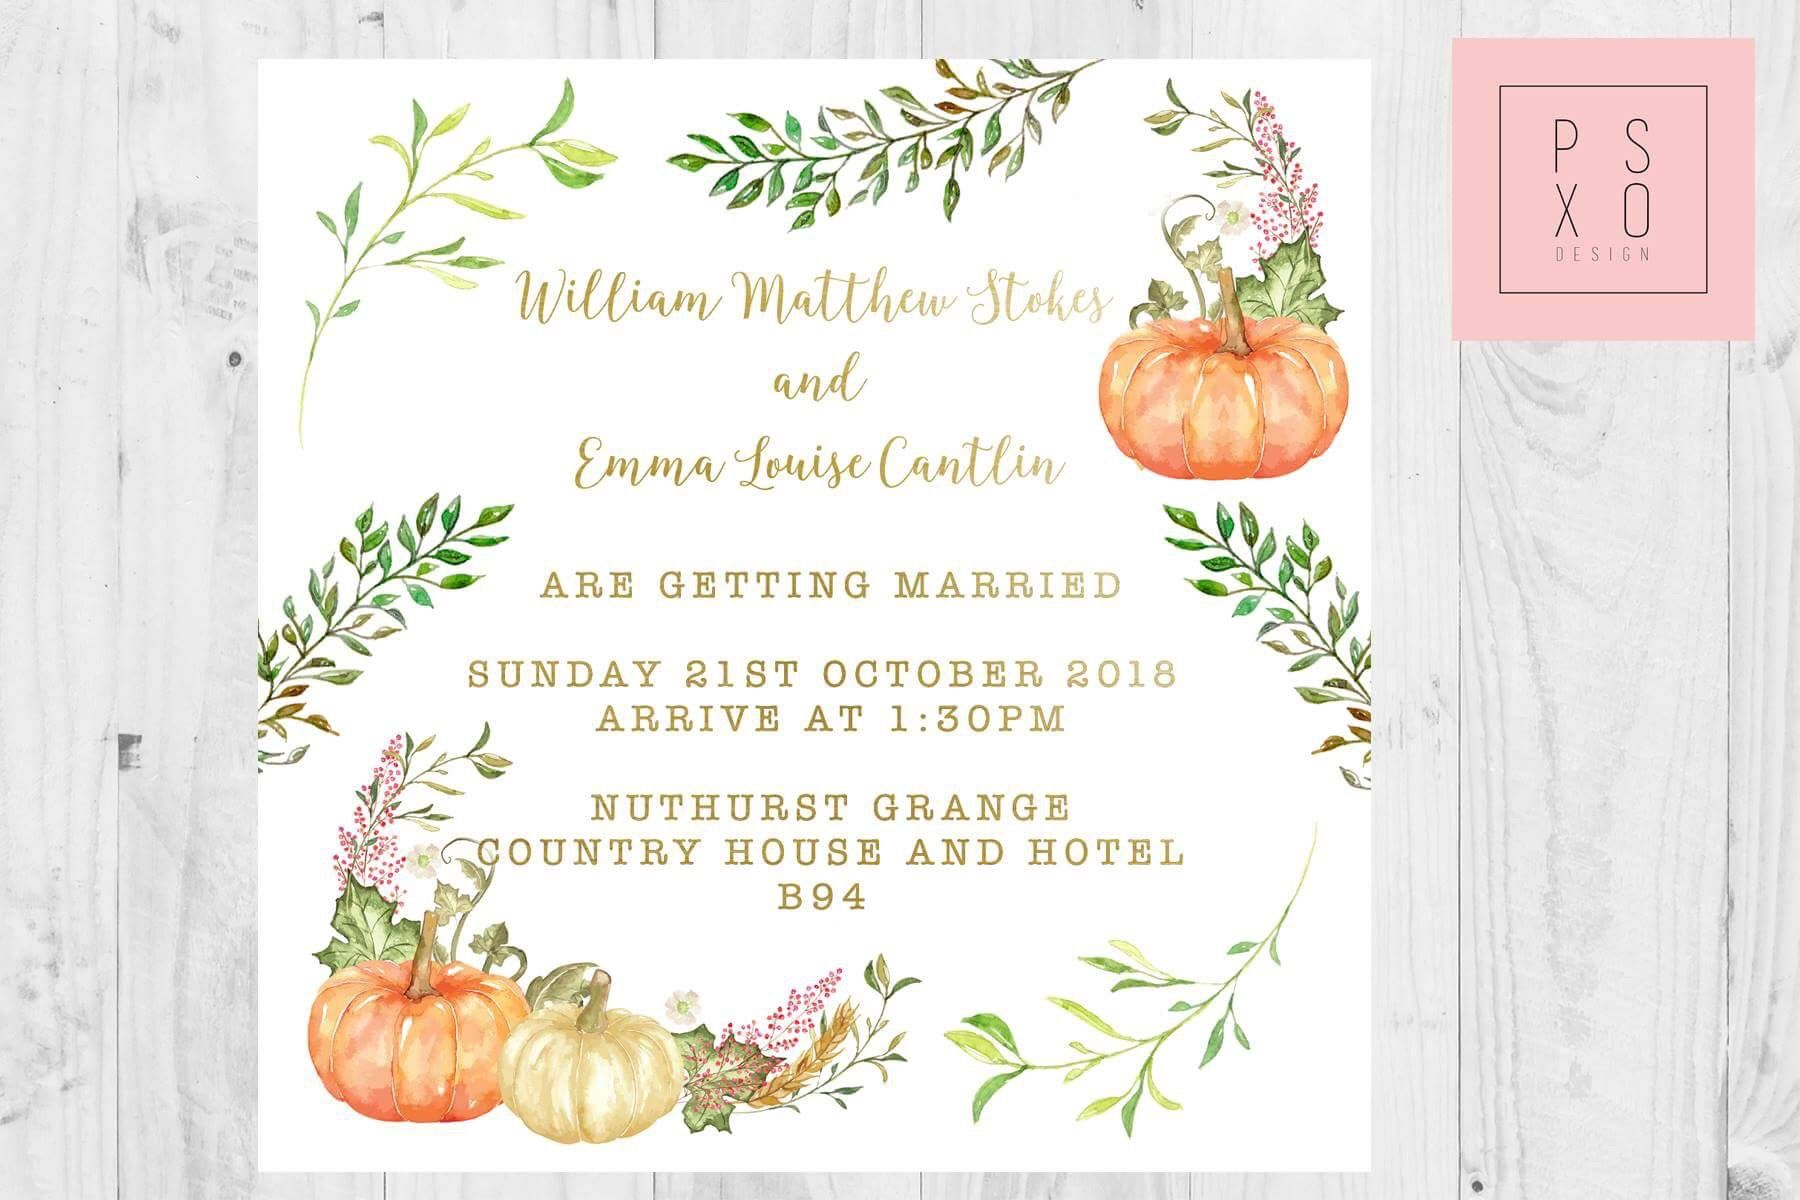 Wedding decorations made with cricut october 2018 Pin by e c on Invites   Pinterest